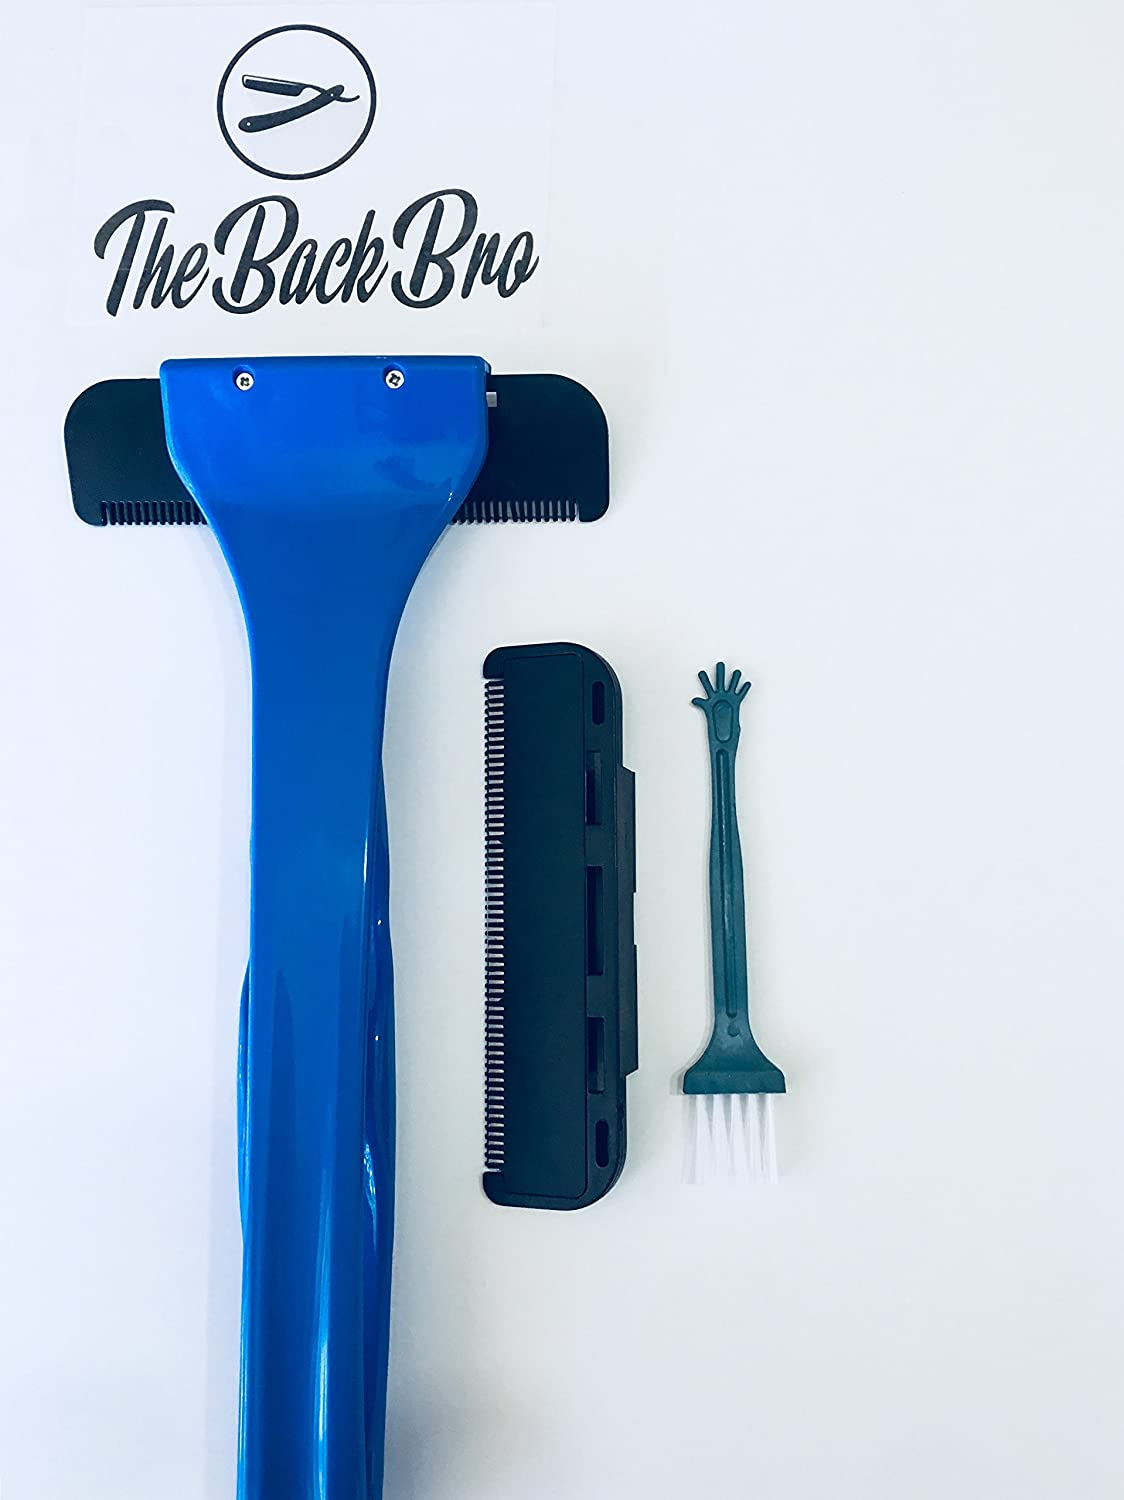 Back Hair Shaver {The Back Bro} Back Hair Removal Kit, Ergonomically Design 17 Handle For Hard -to -Reach Areas, Lil Bro Cleaning Brush and 1 Replacement Blade, (Blue) Q100 BBQ-100